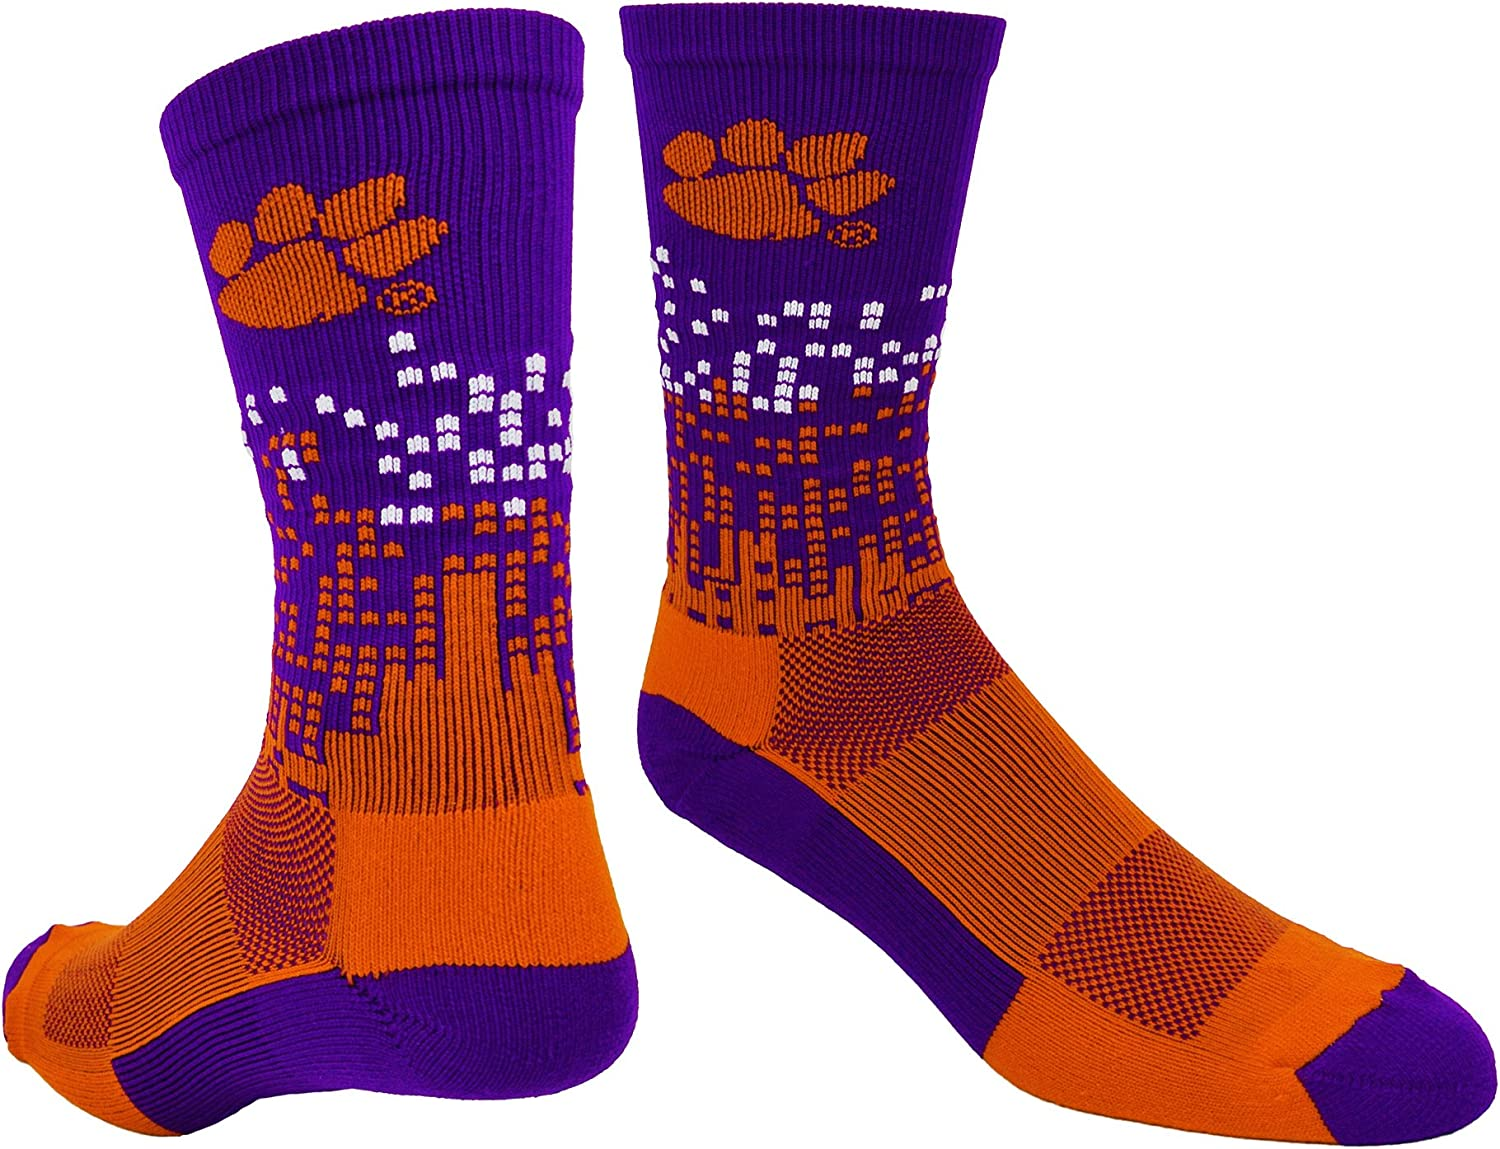 Clemson Sales of SALE items from new works Tigers Socks Direct stock discount Downtown Crew